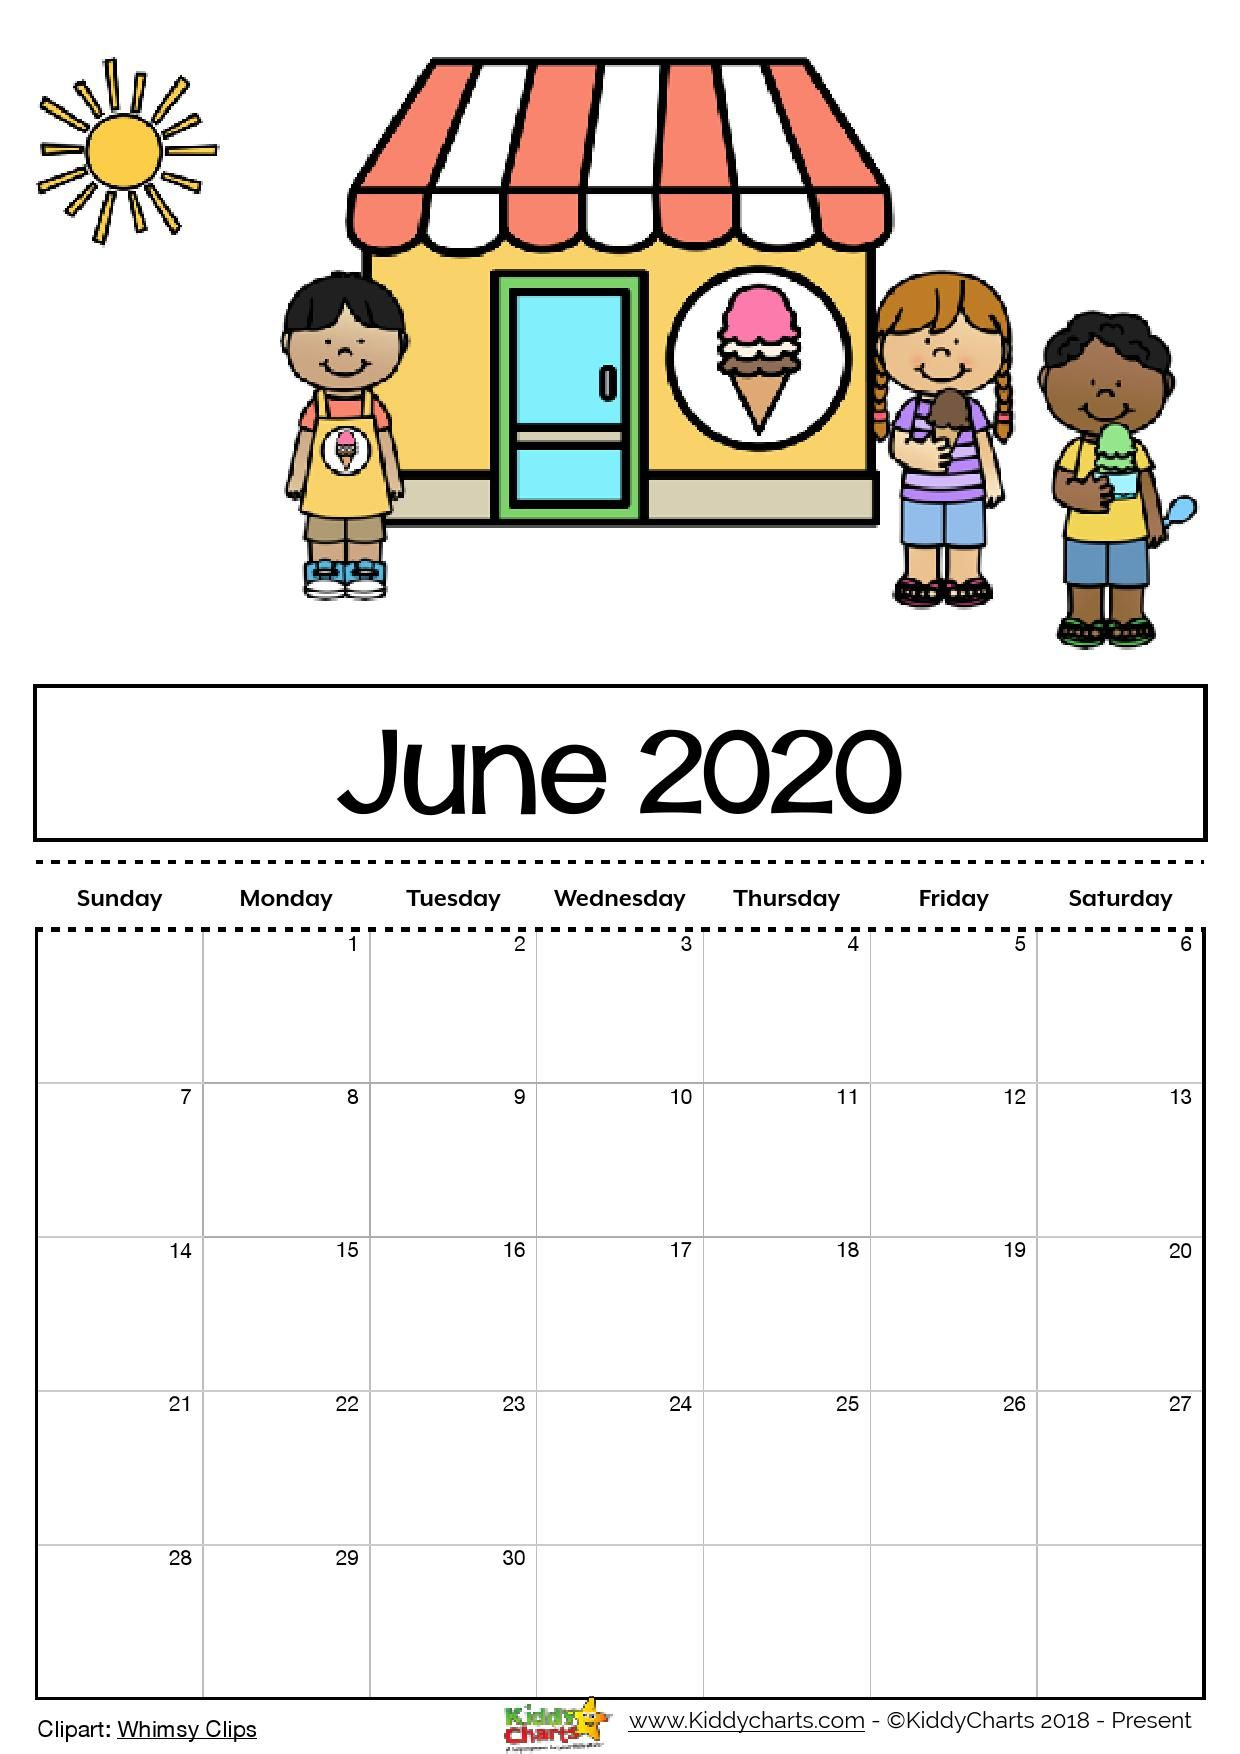 Check Out Our Free Editable Calendar Available For